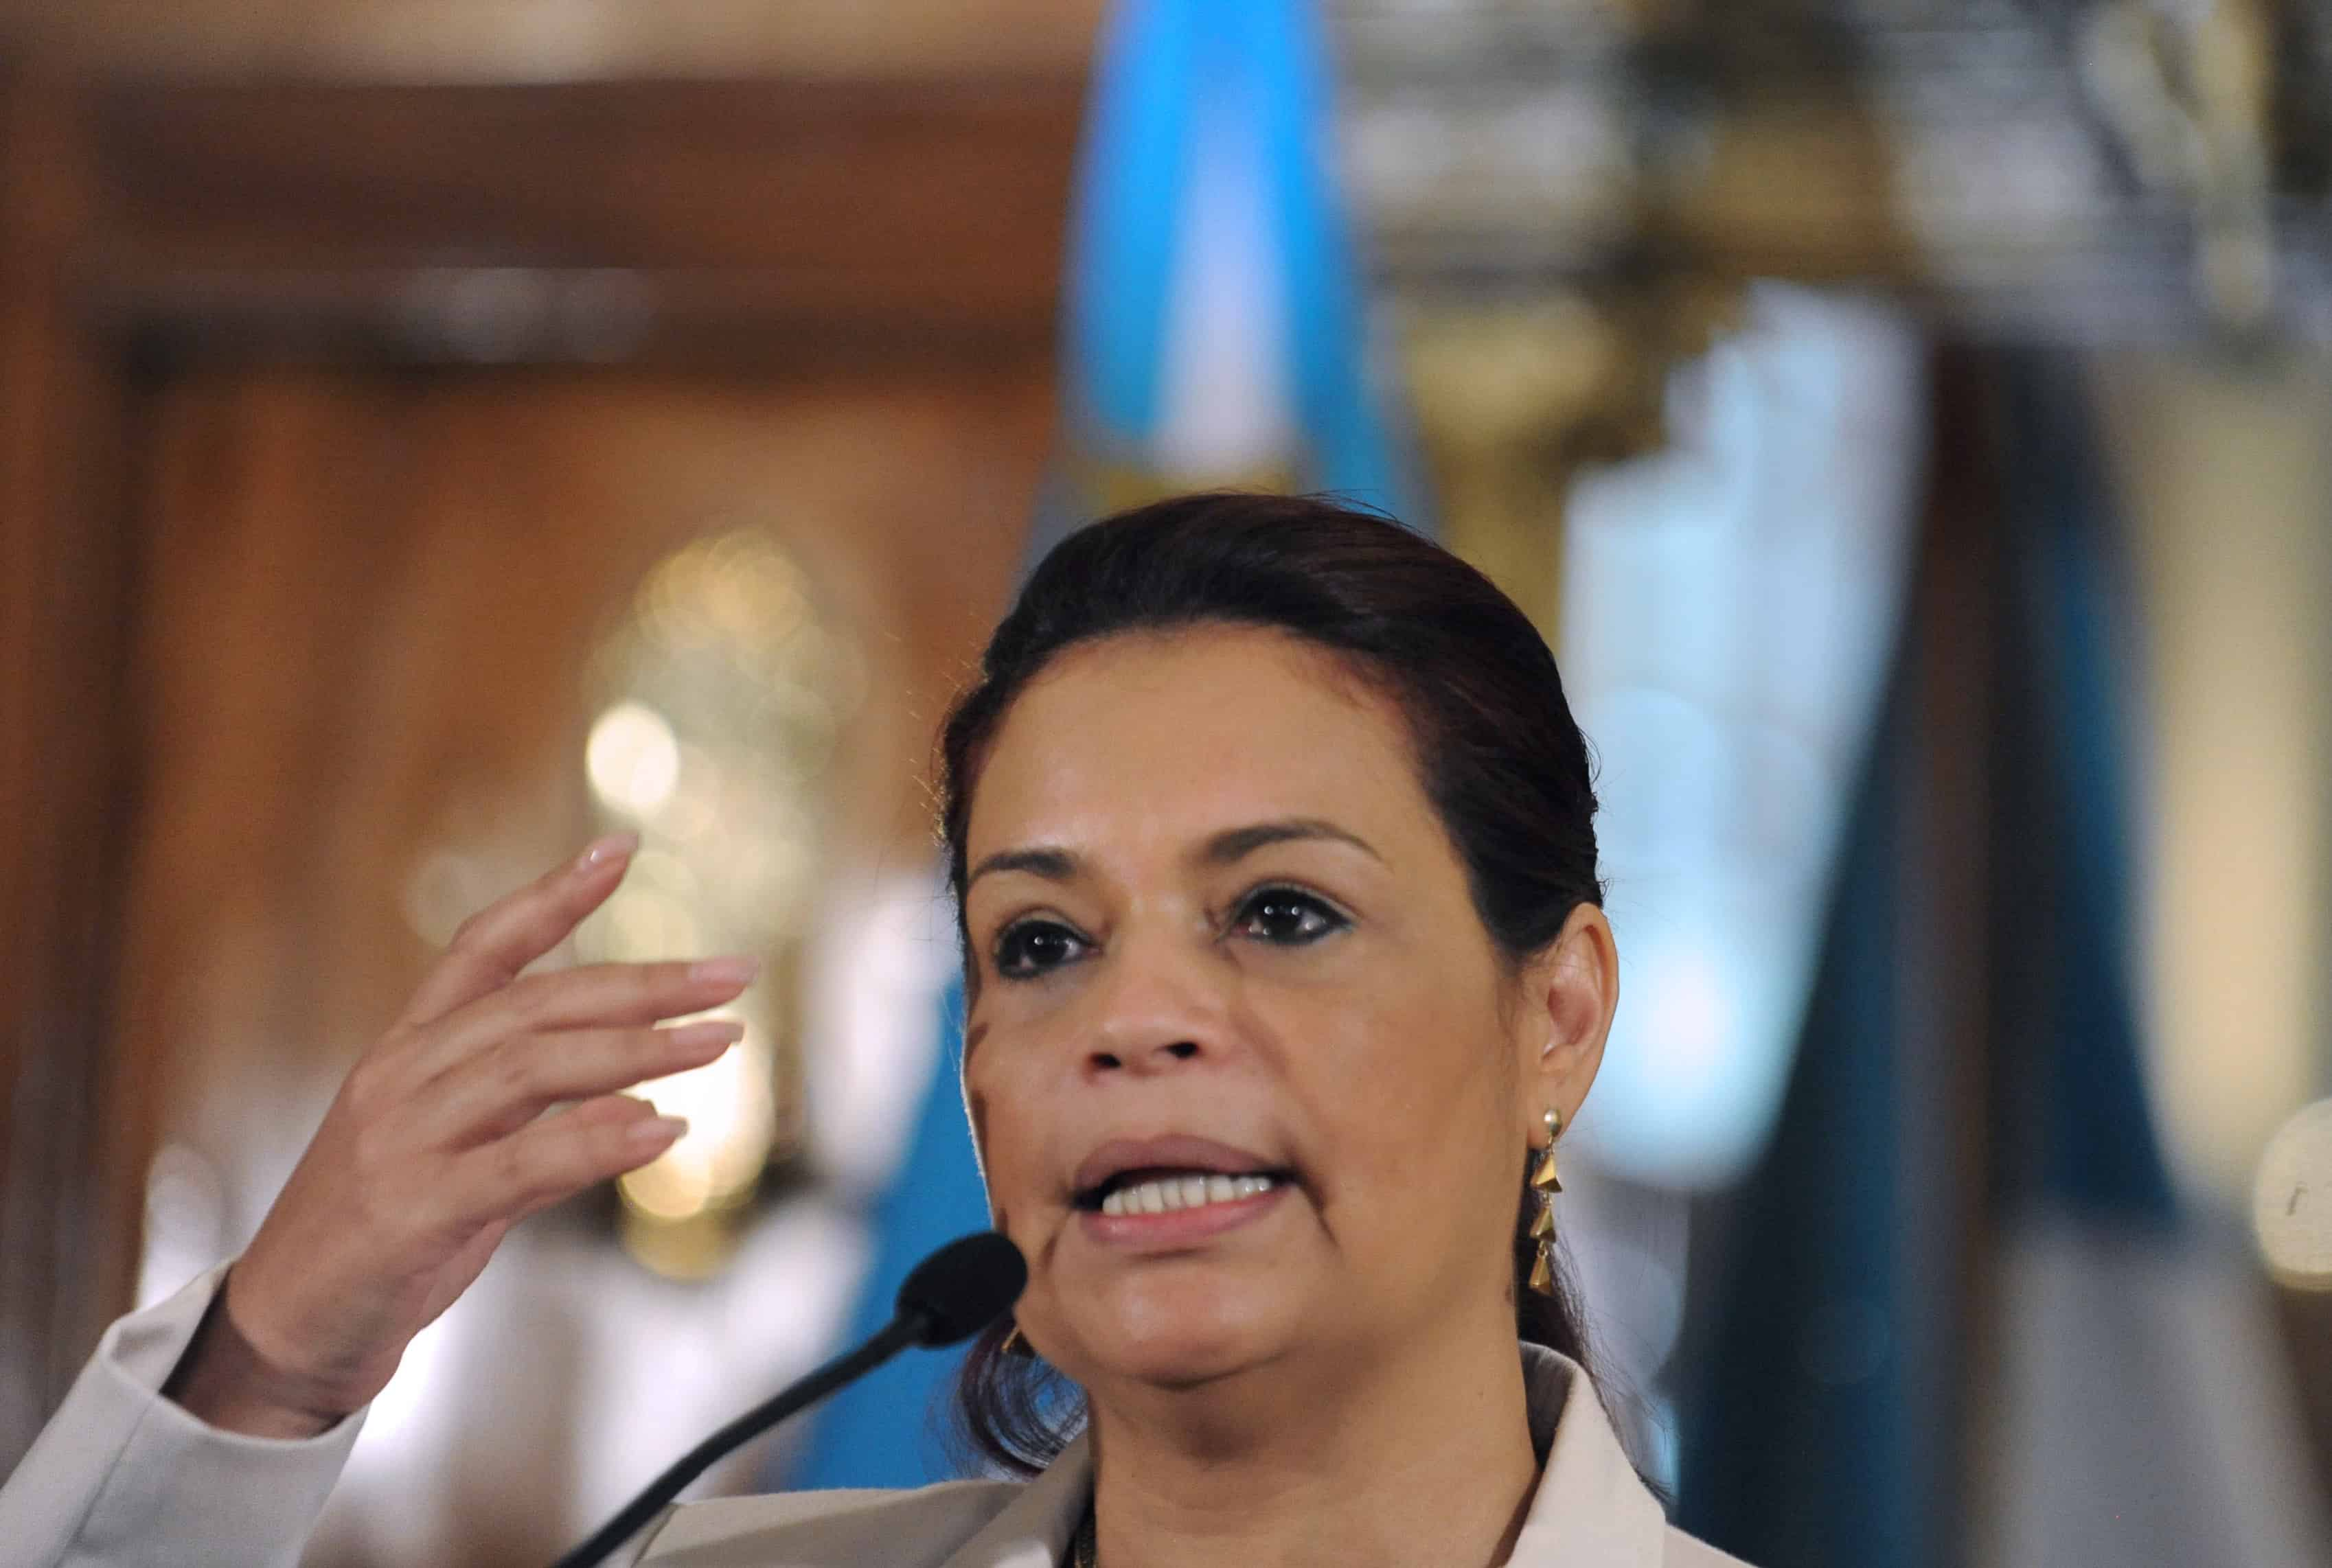 Guatemala's Vice President Roxana Baldetti offers a press conference at the presidential residence in Guatemala City on April 19, 2015. Baldetti resigned on May 8, 2015 amid a tax corruption scandal, in which her former private secretary Juan Carlos Monzón was allegedly involved.